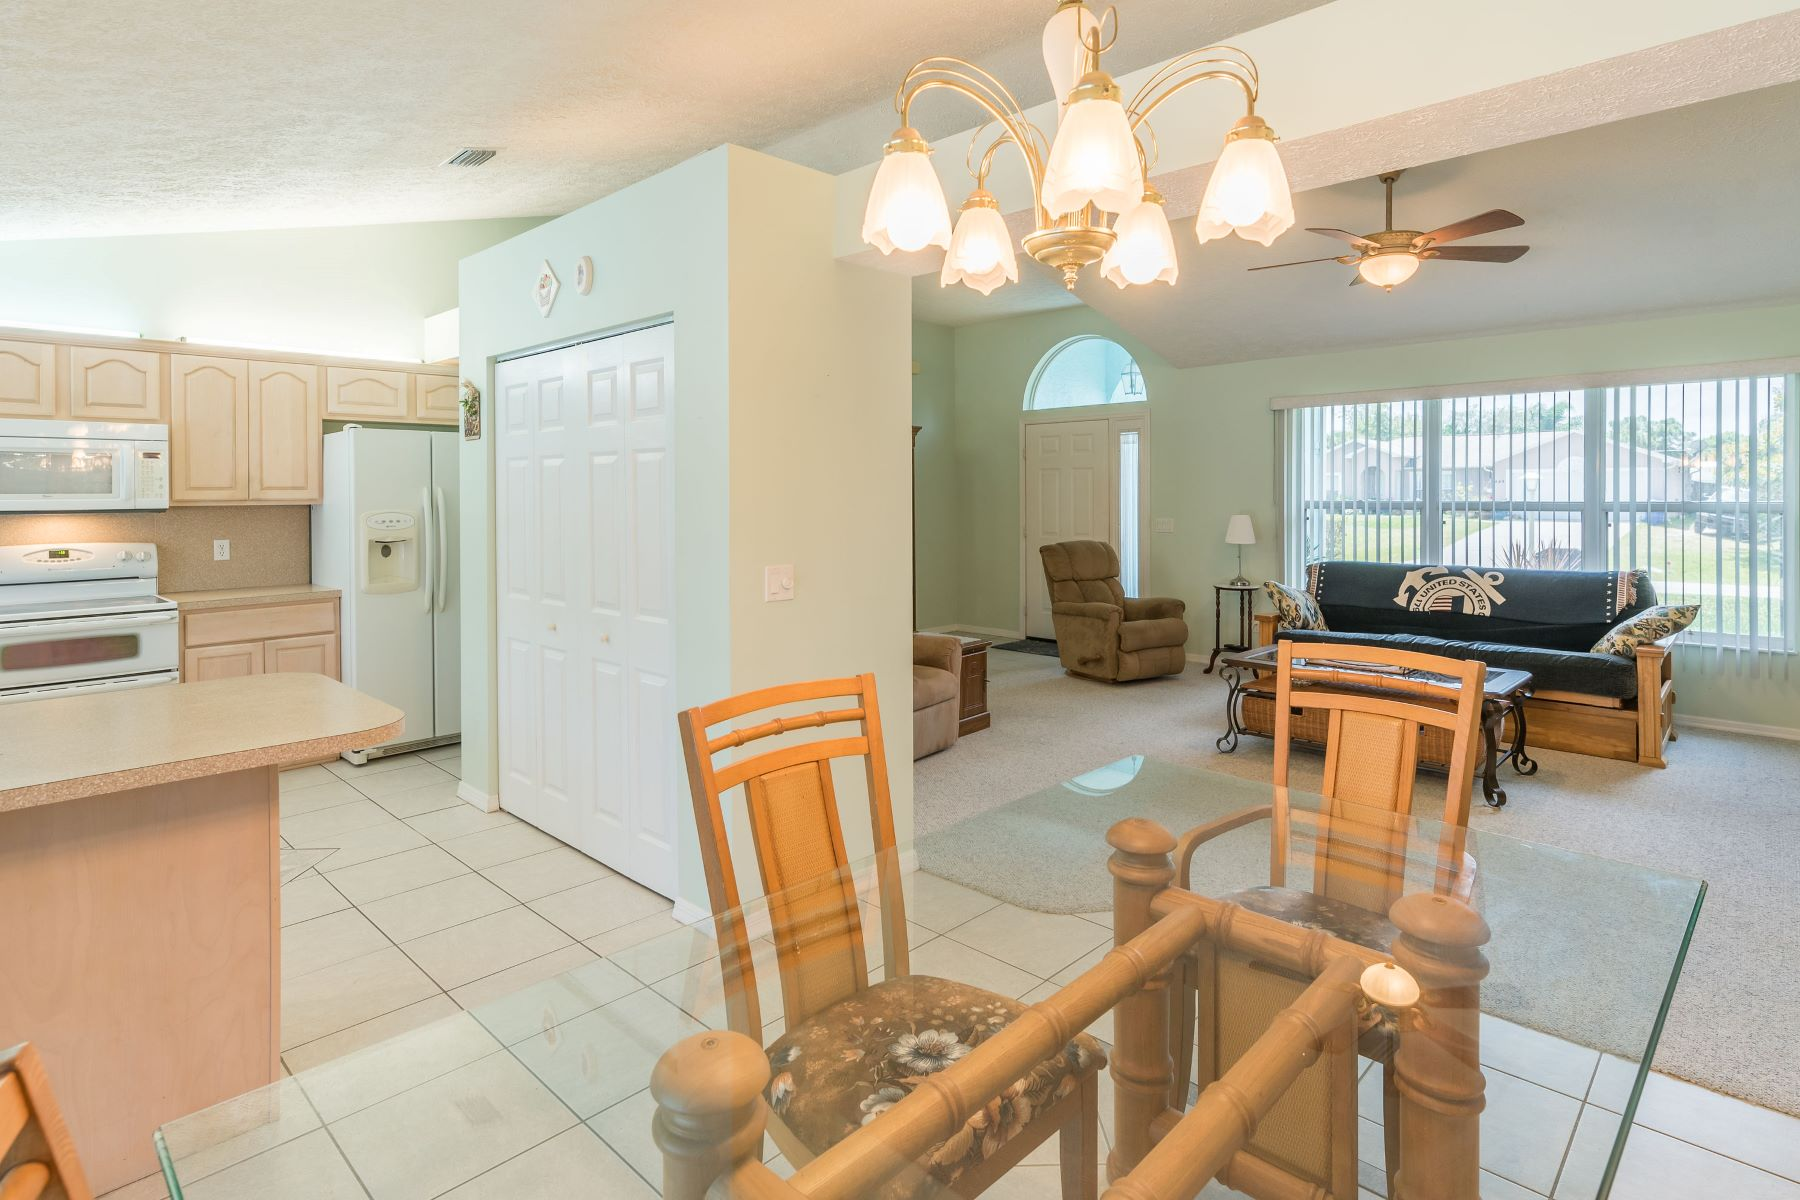 Additional photo for property listing at Sebastian Highlands 450 Biscayne Lane Sebastian, Florida 32958 United States